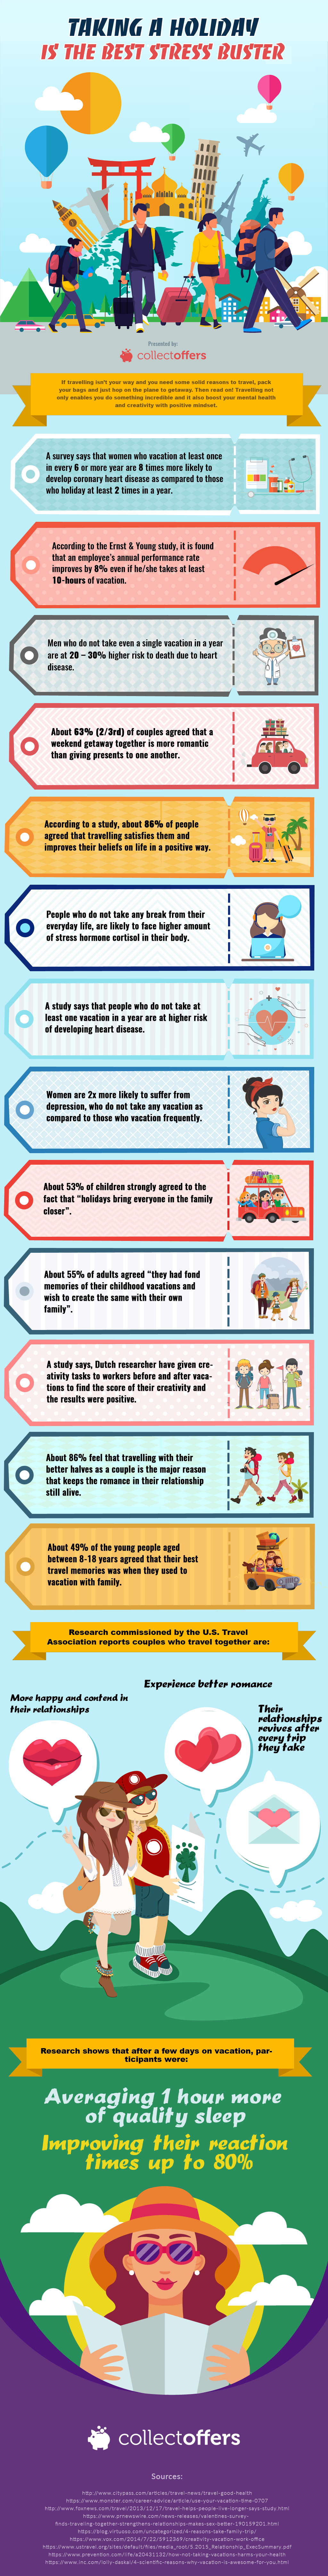 Taking a holiday - infographic